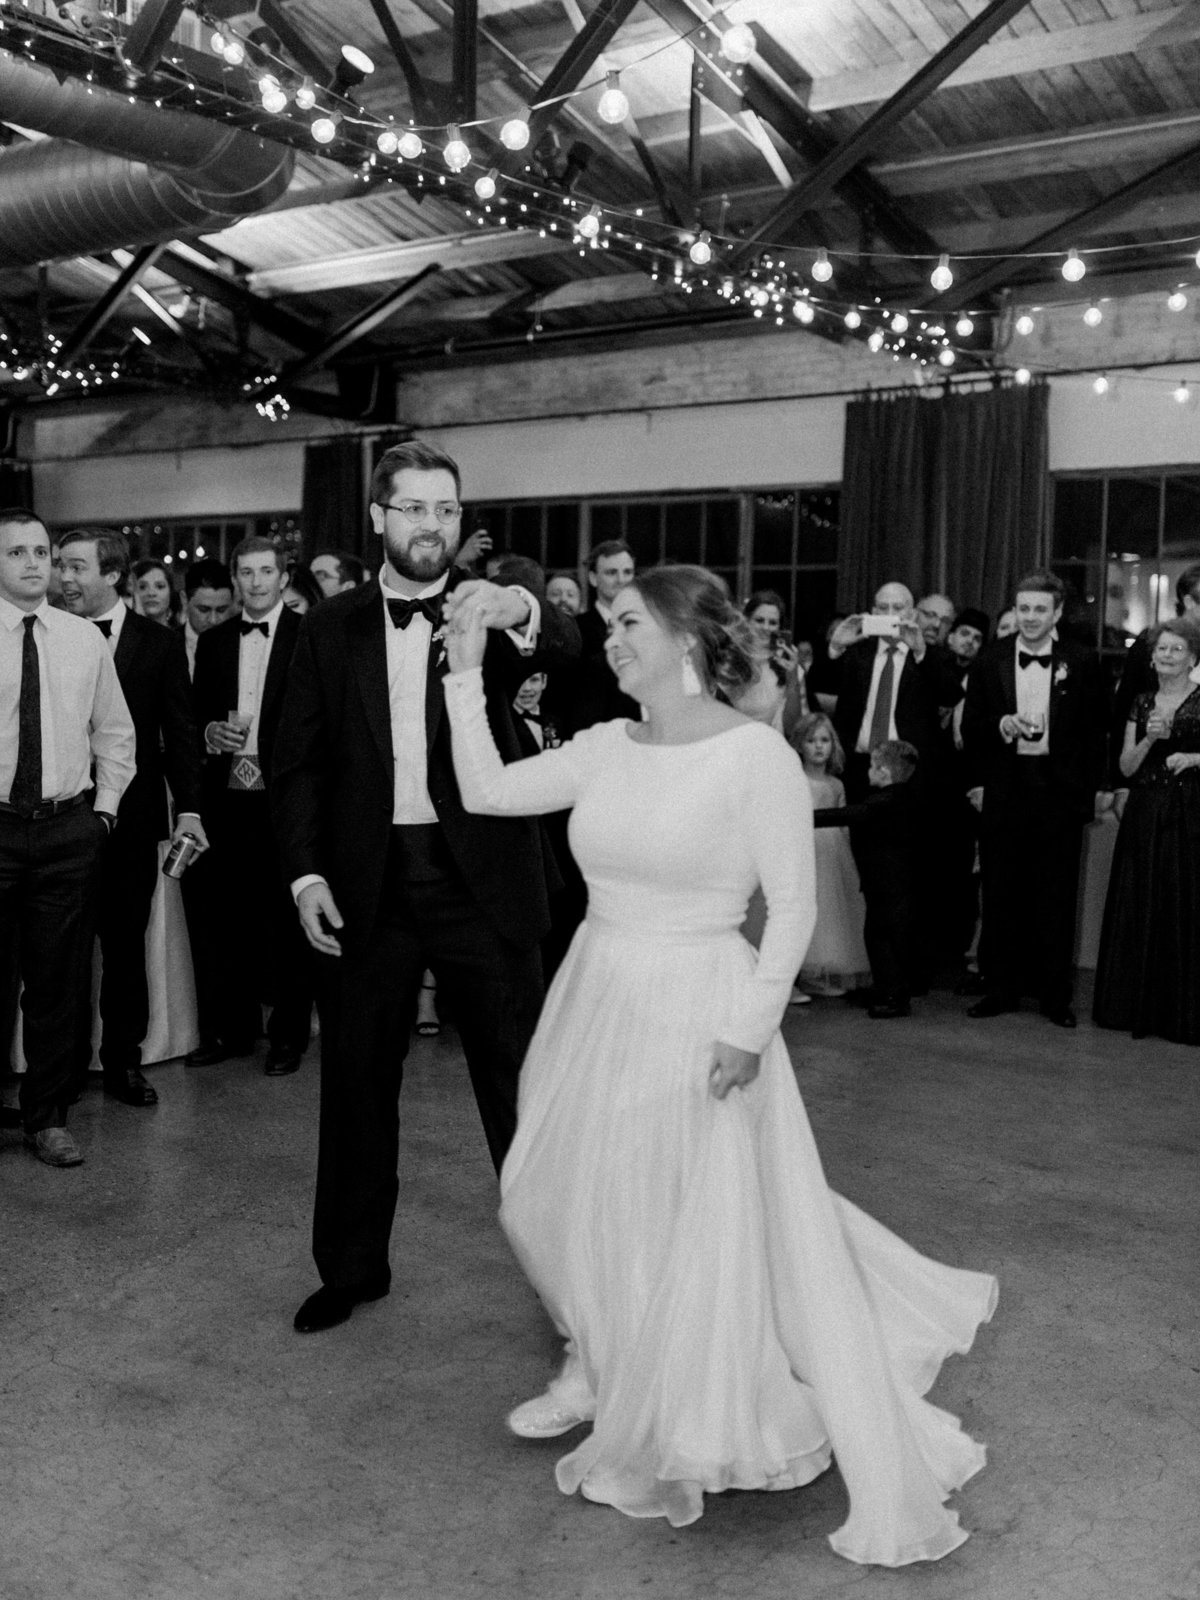 Courtney Hanson Photography - Festive Holiday Wedding in Dallas at Hickory Street Annex-1308